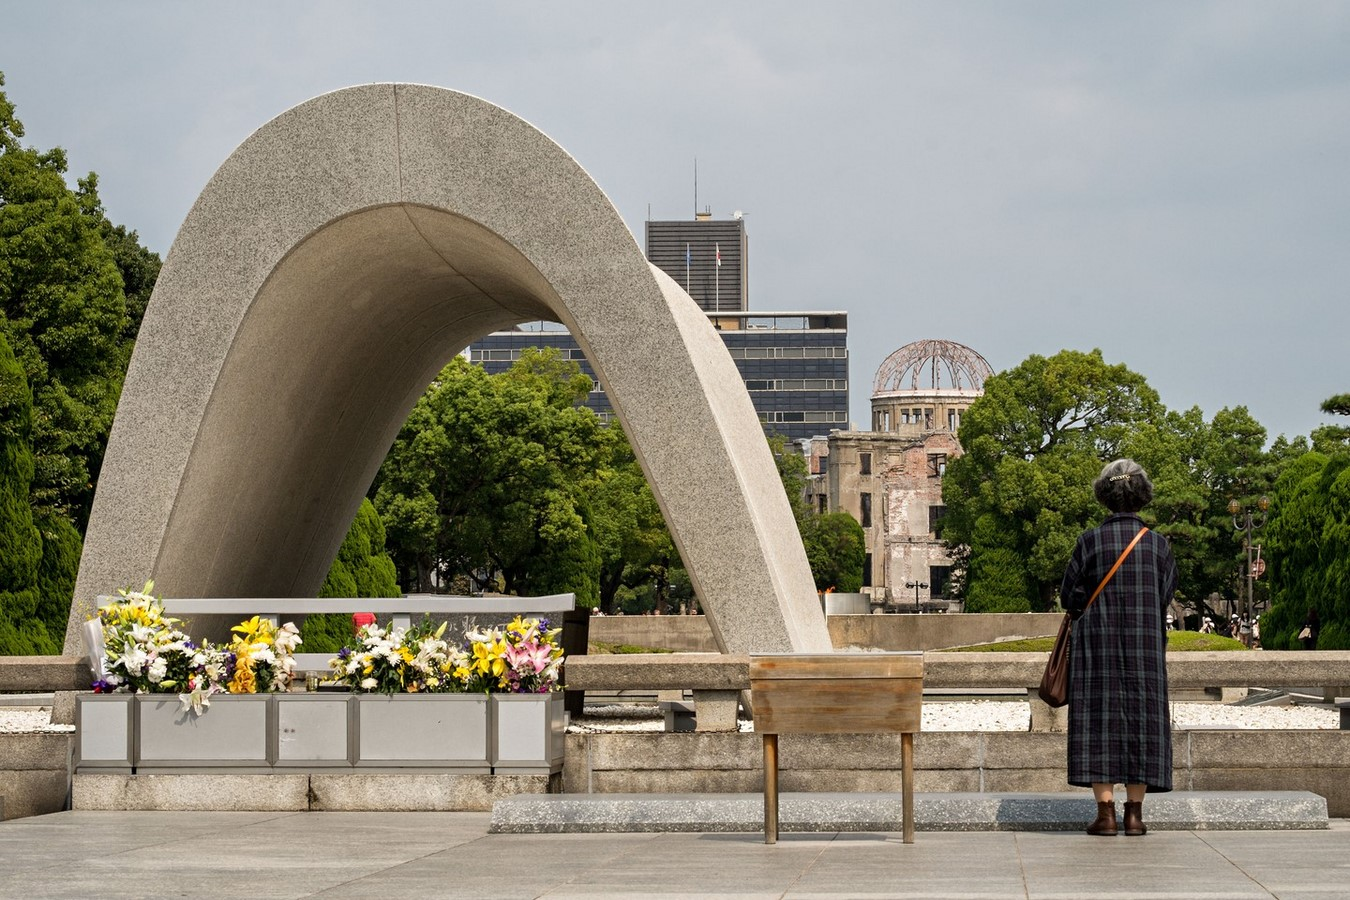 Hiroshima peace Center and memorial park by Kenzo Tange: Symbolizing devotion to peace - Sheet3